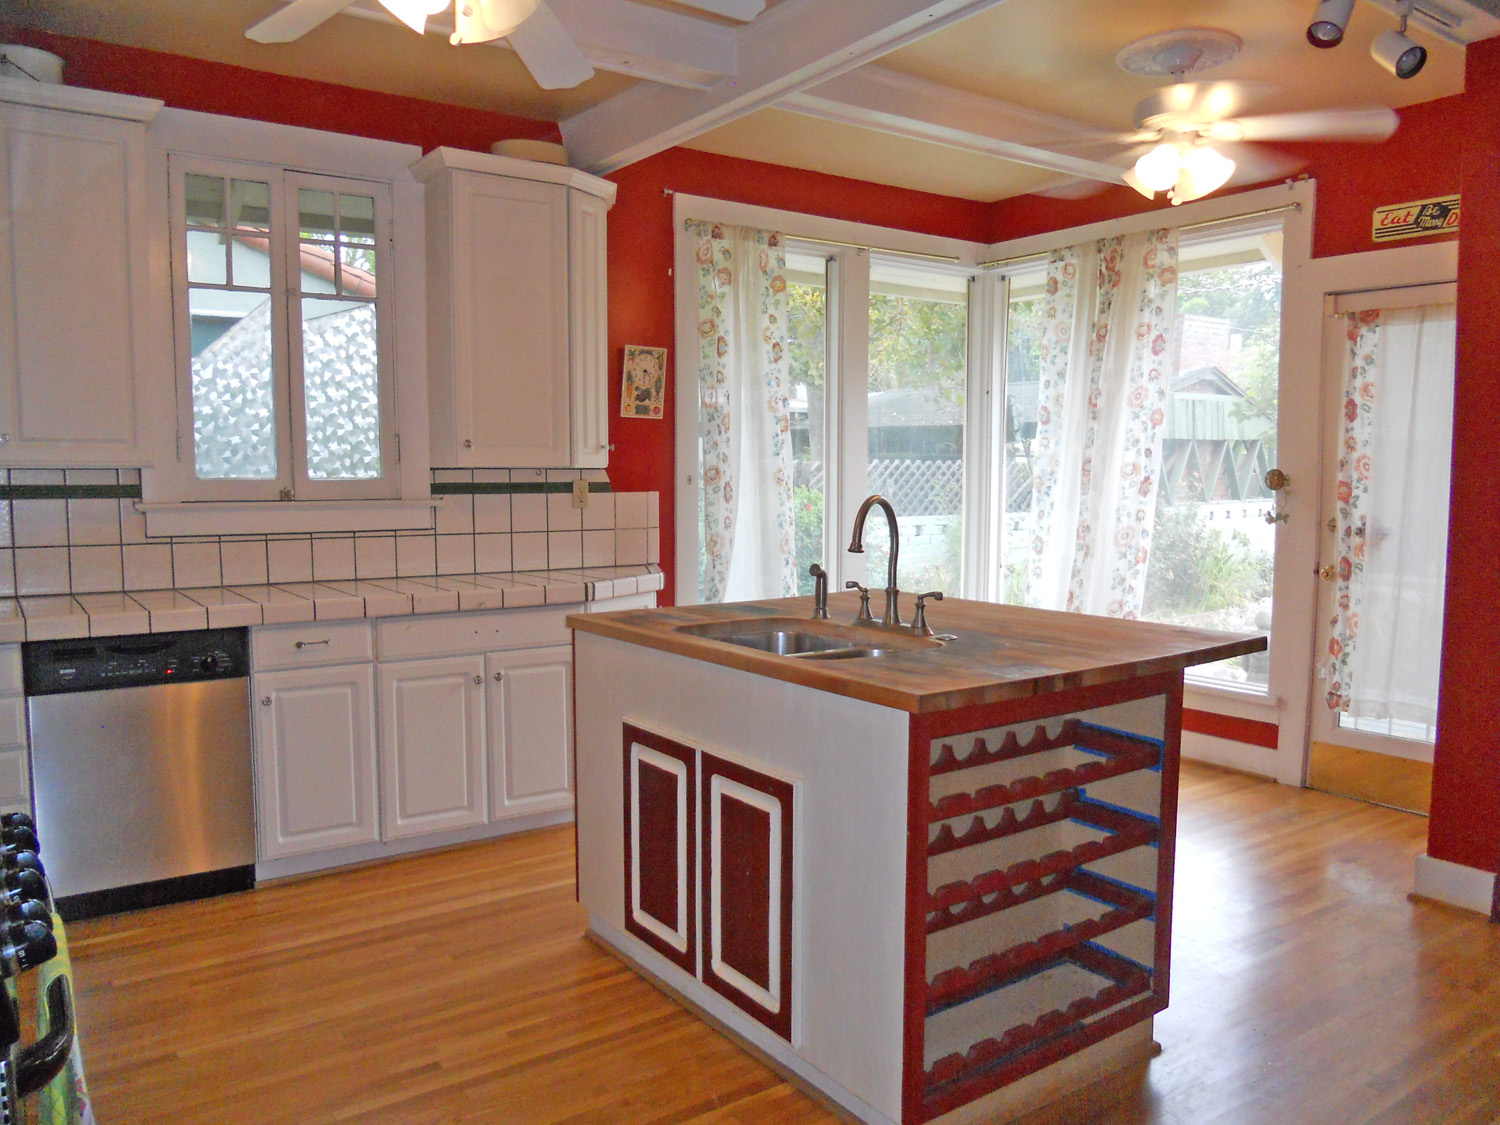 Kitchen needs some finishing touches, but it has great space to work with.